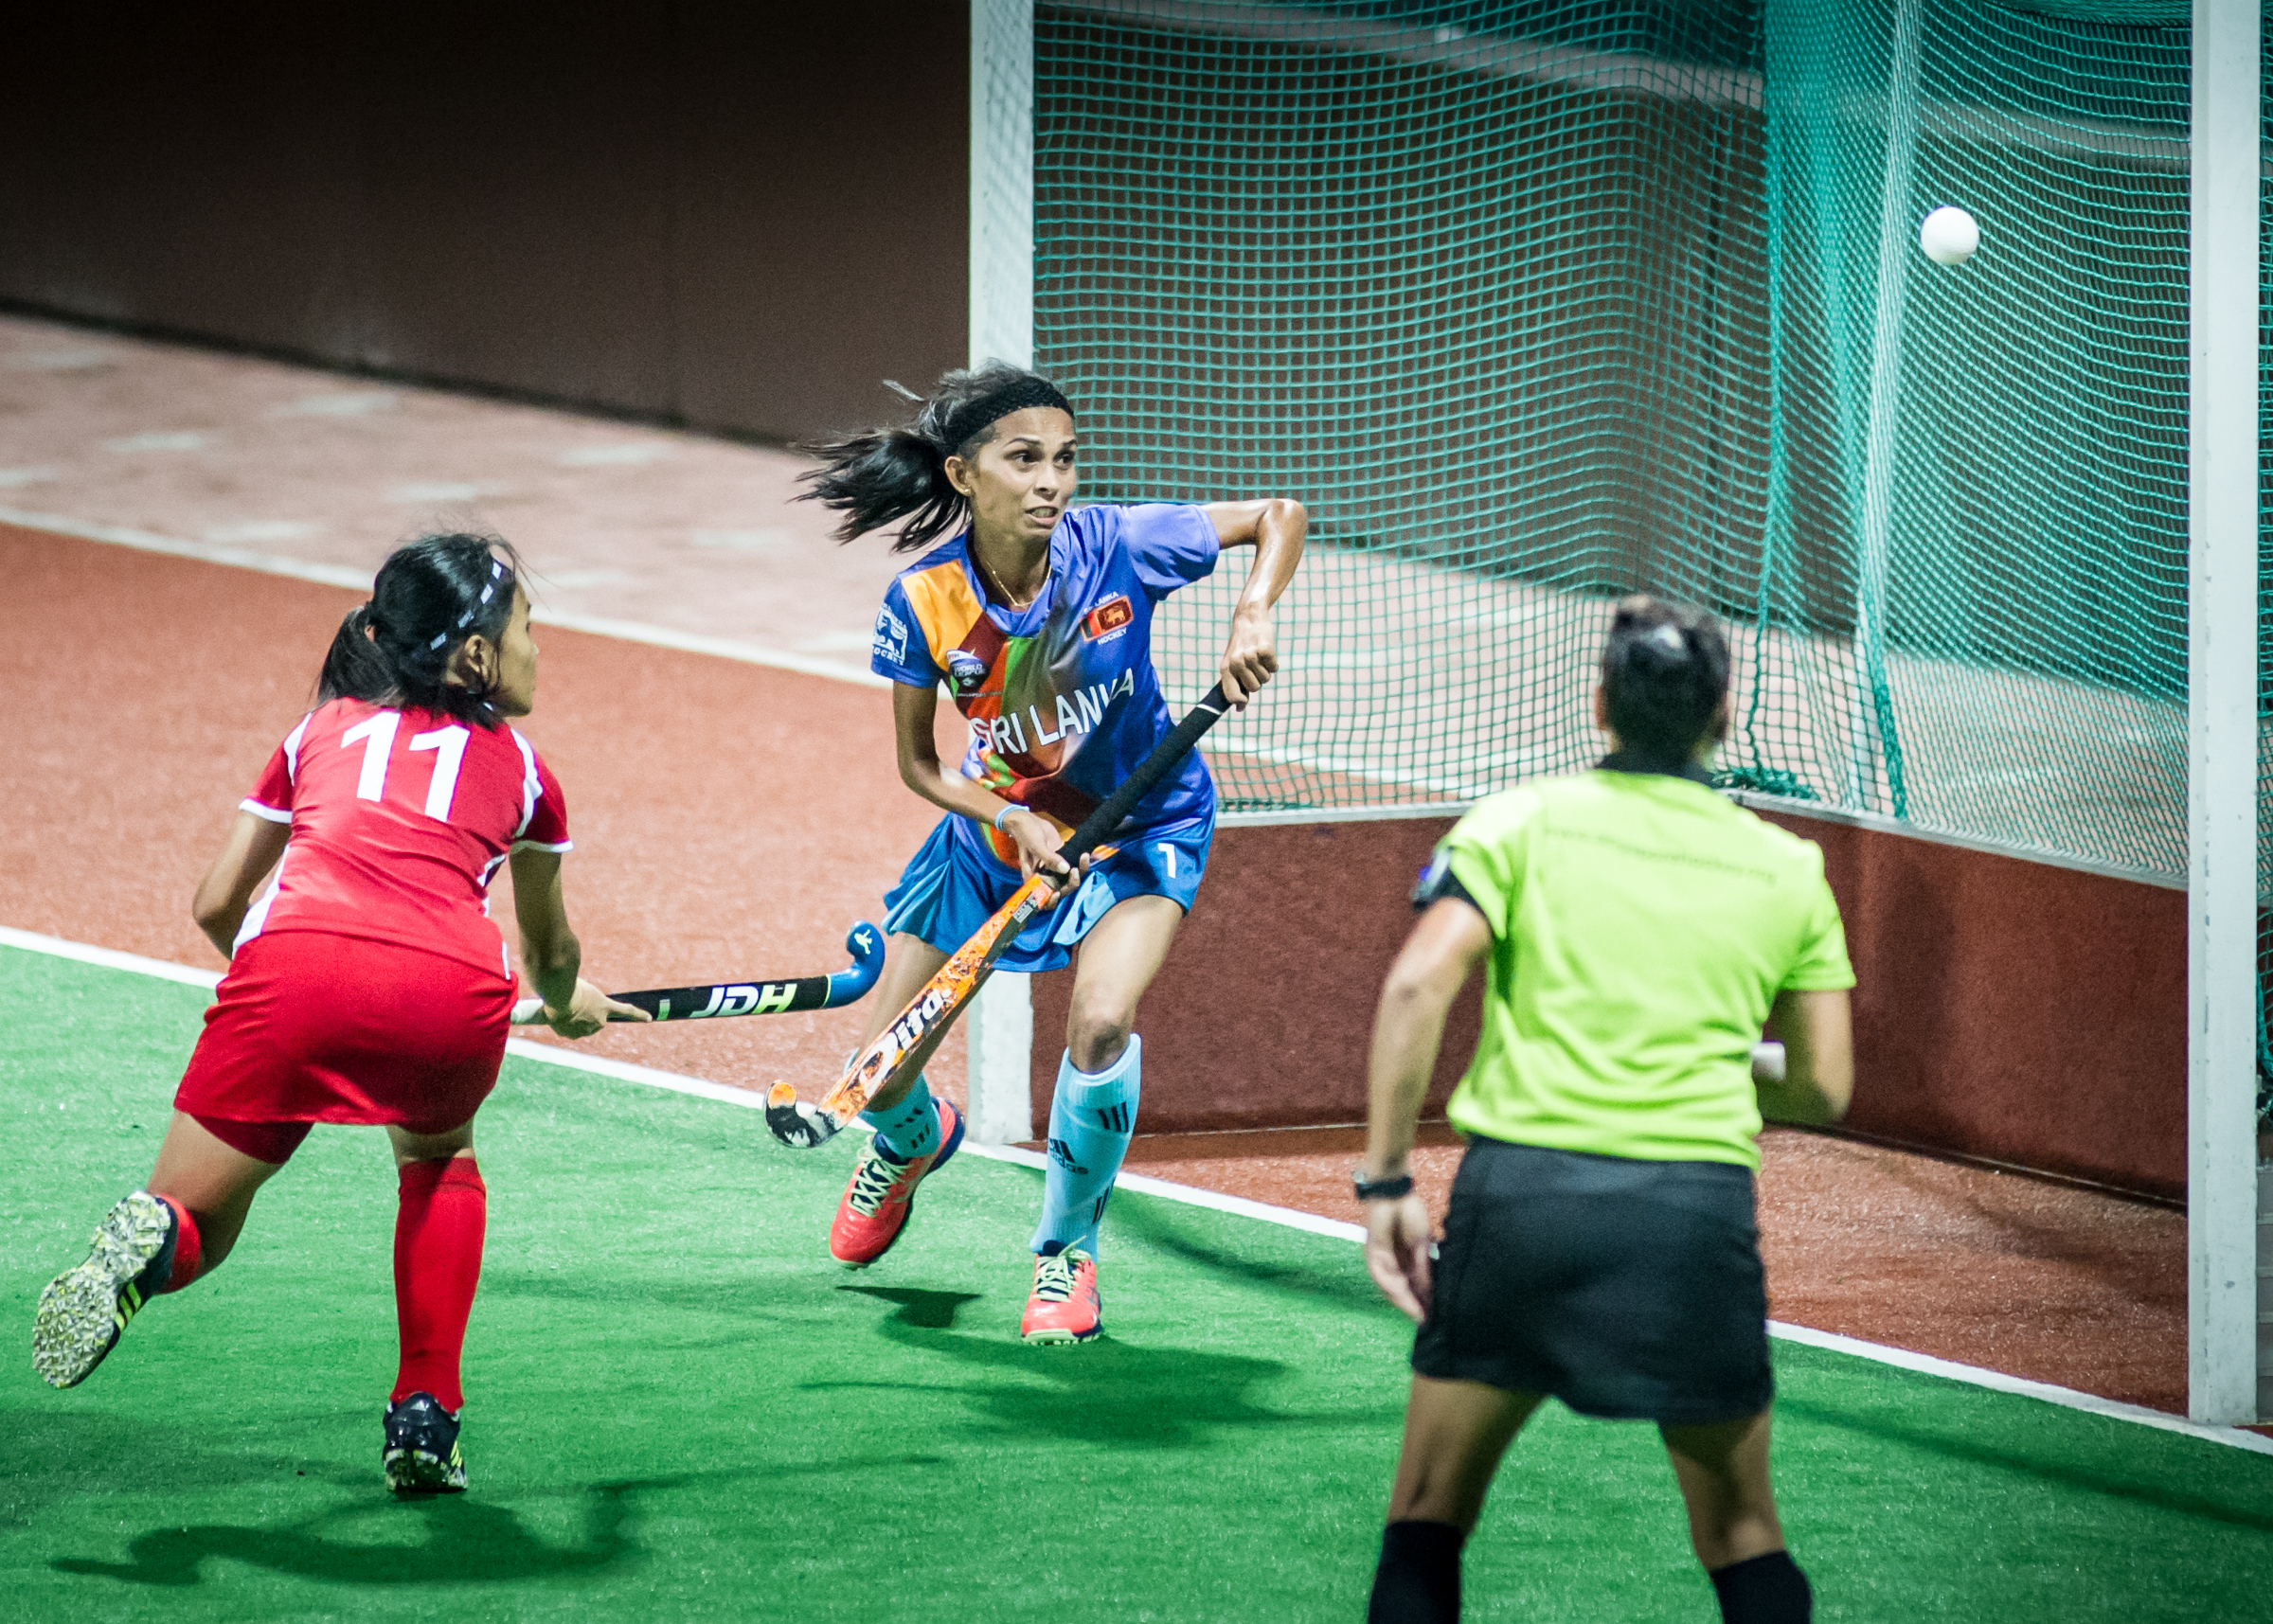 A Singaporean player scores against Sri Lanka during a World Hockey League match at the Sengkang Sports Complex.